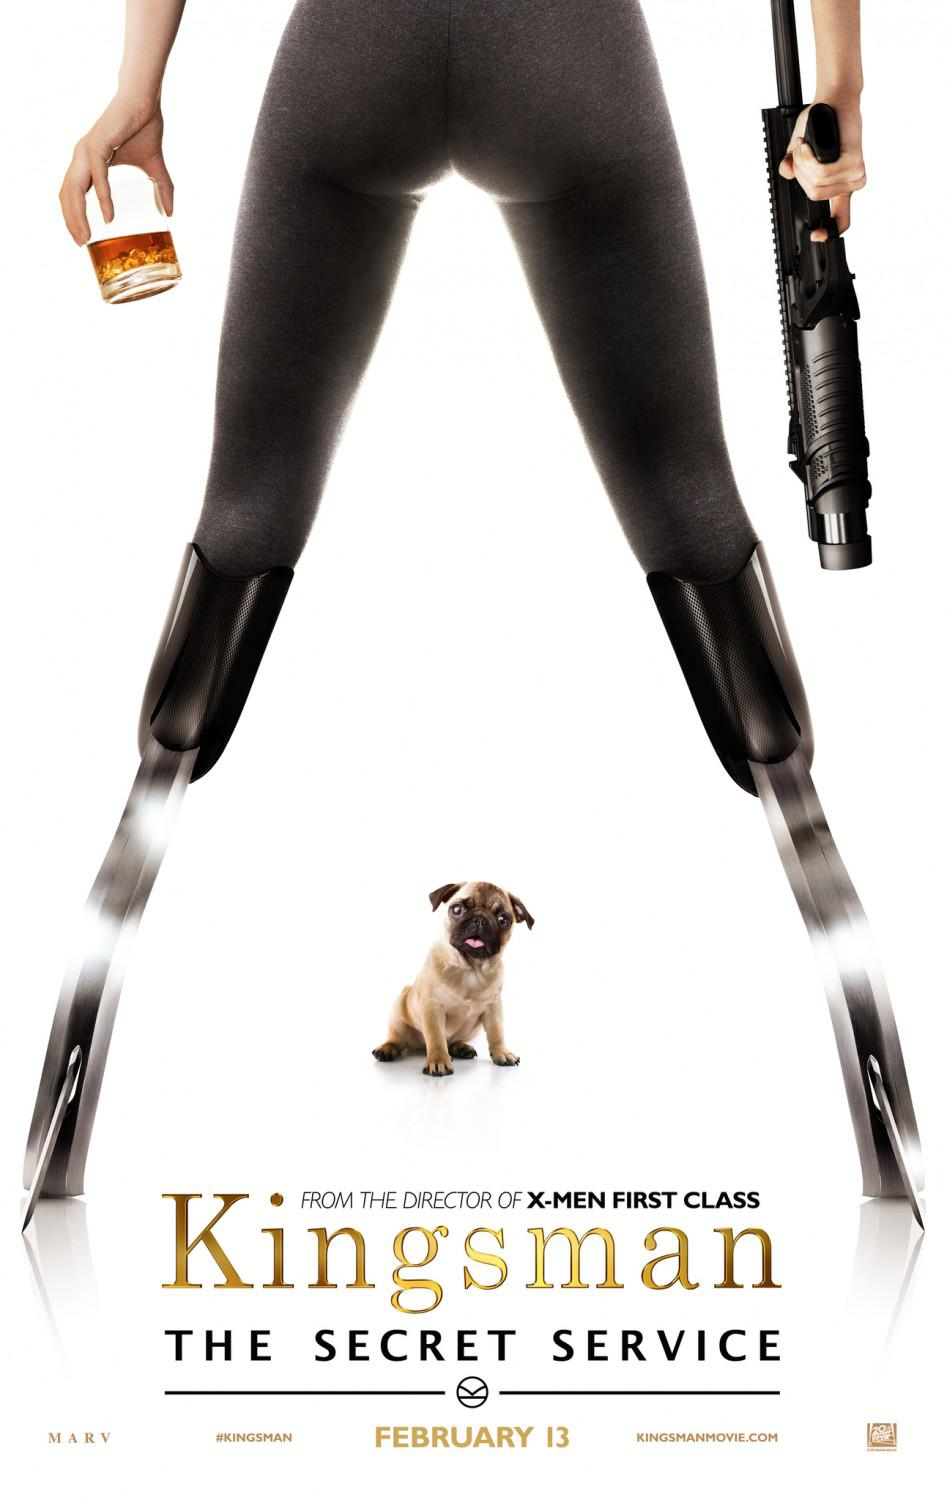 Kingsman 1 - the Secret Service - dog poster